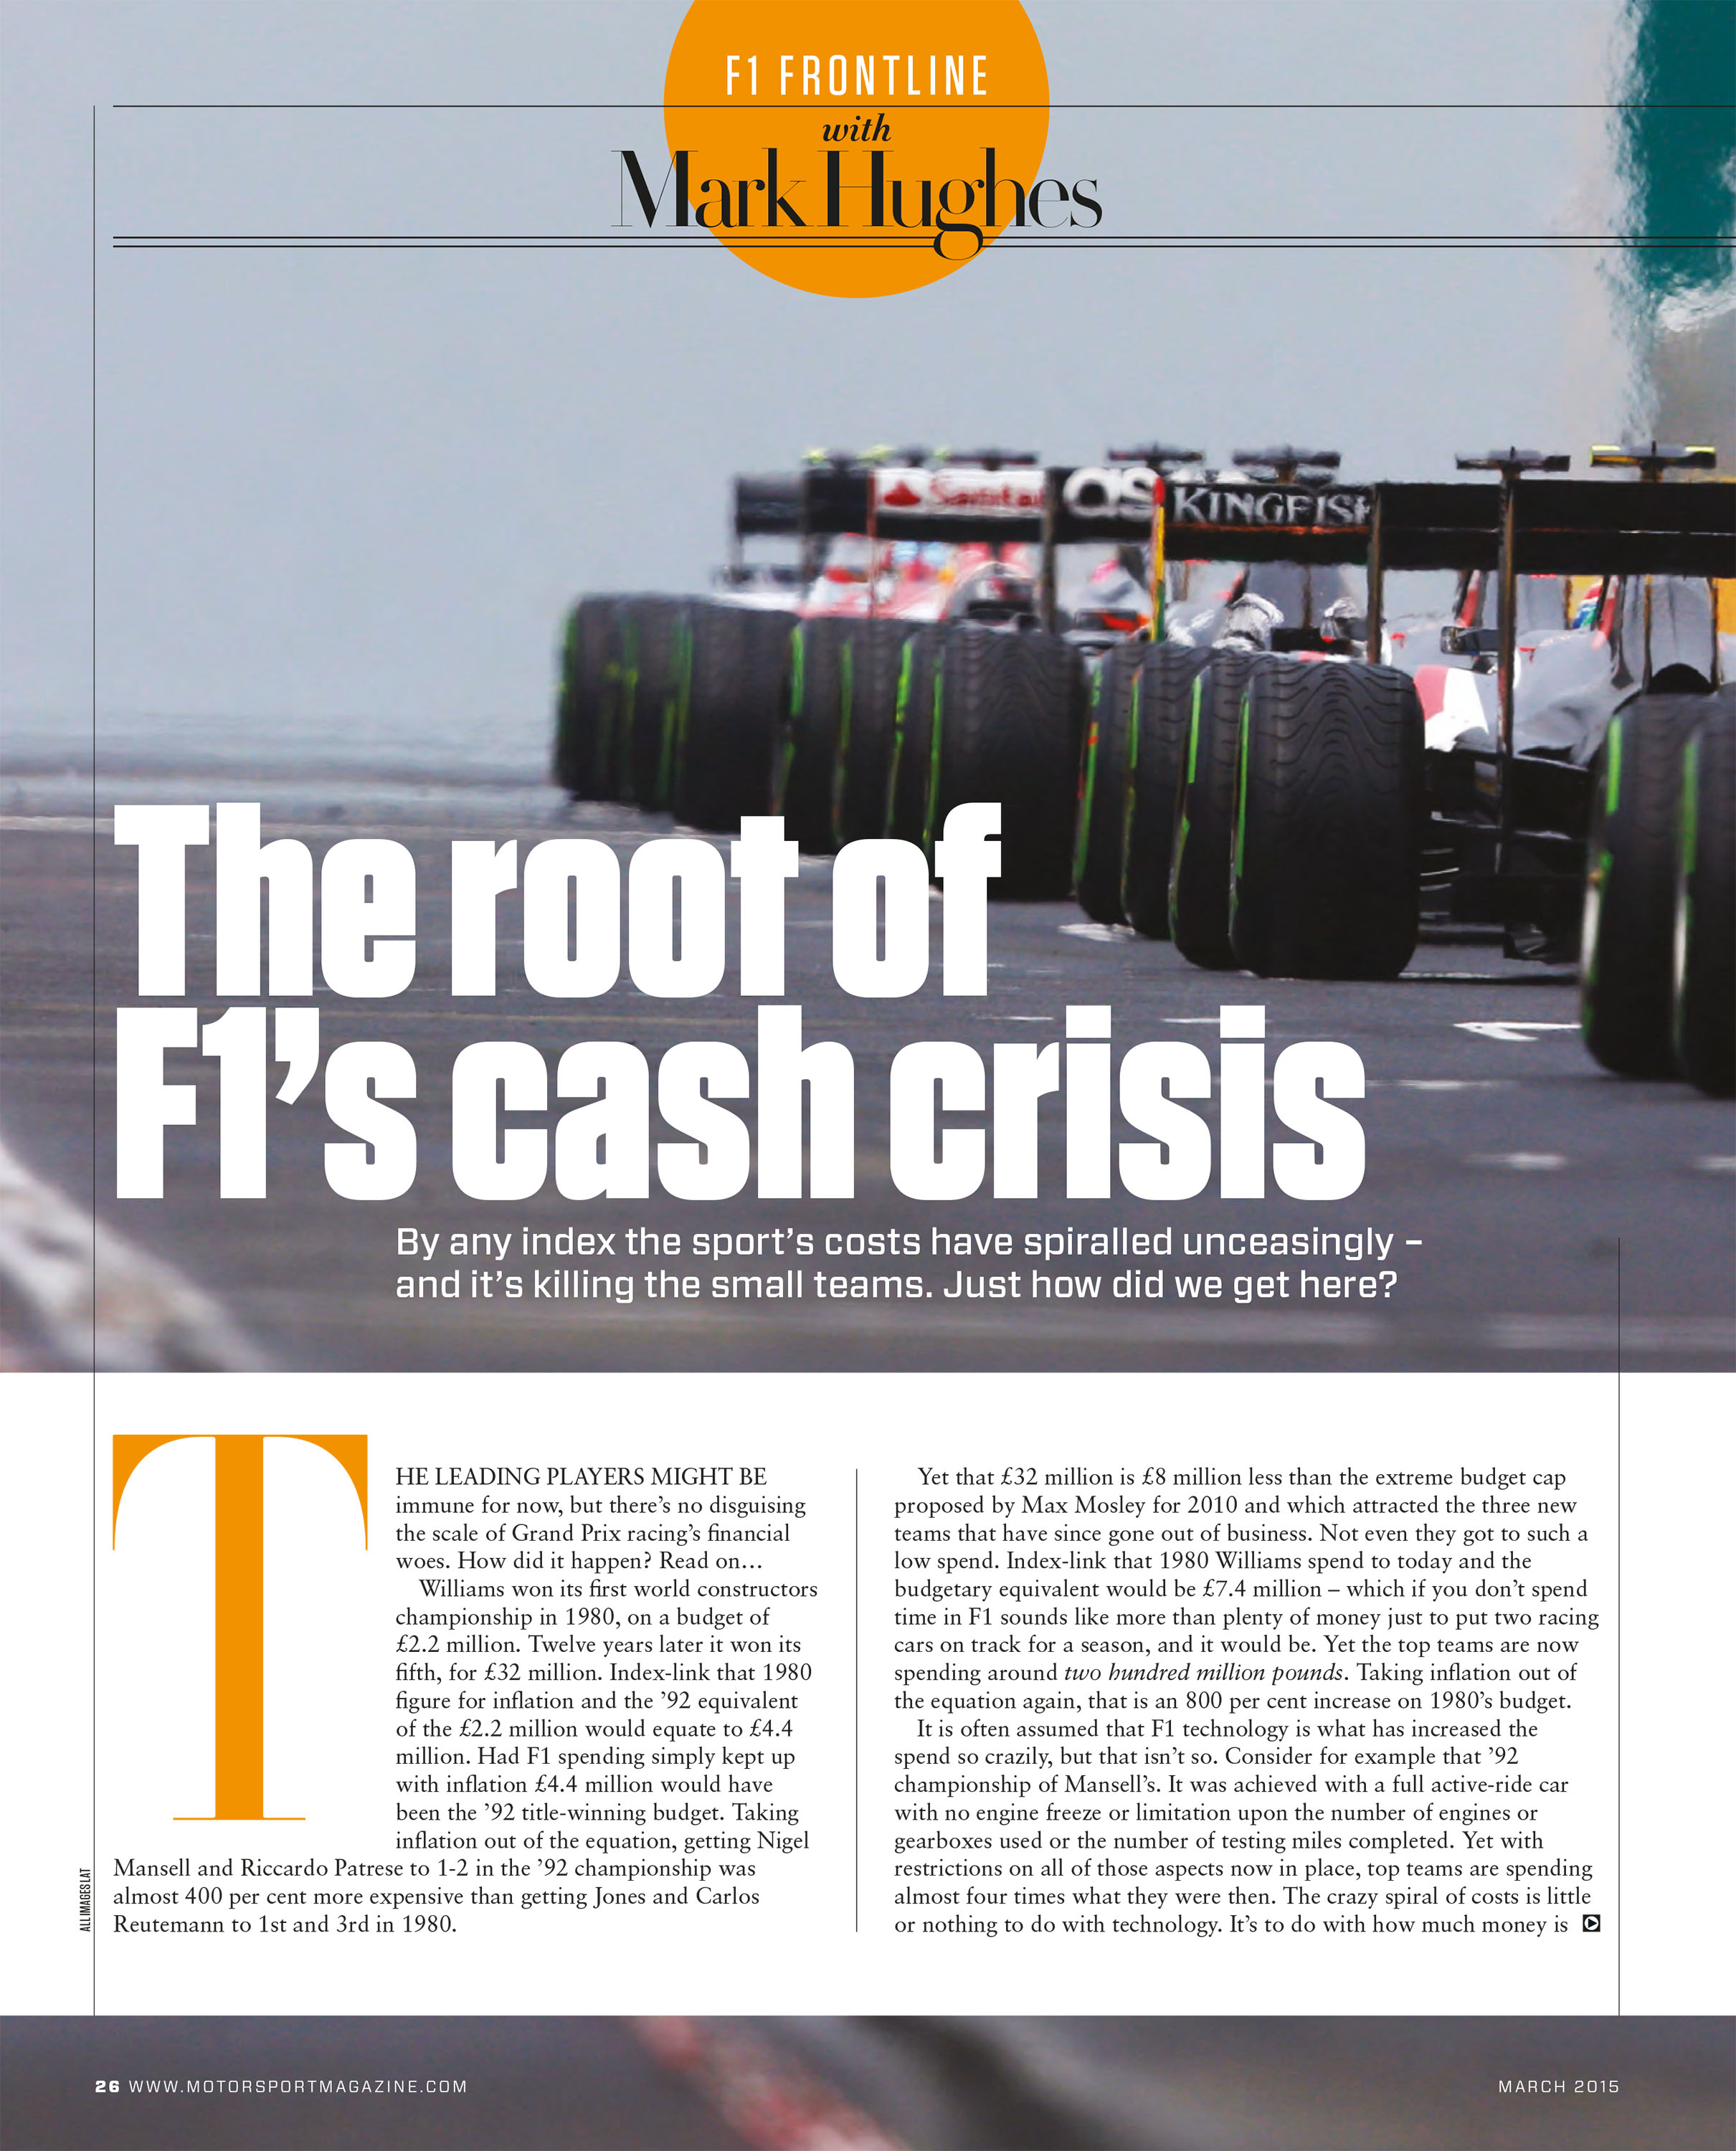 The root of F1's cash crisis image